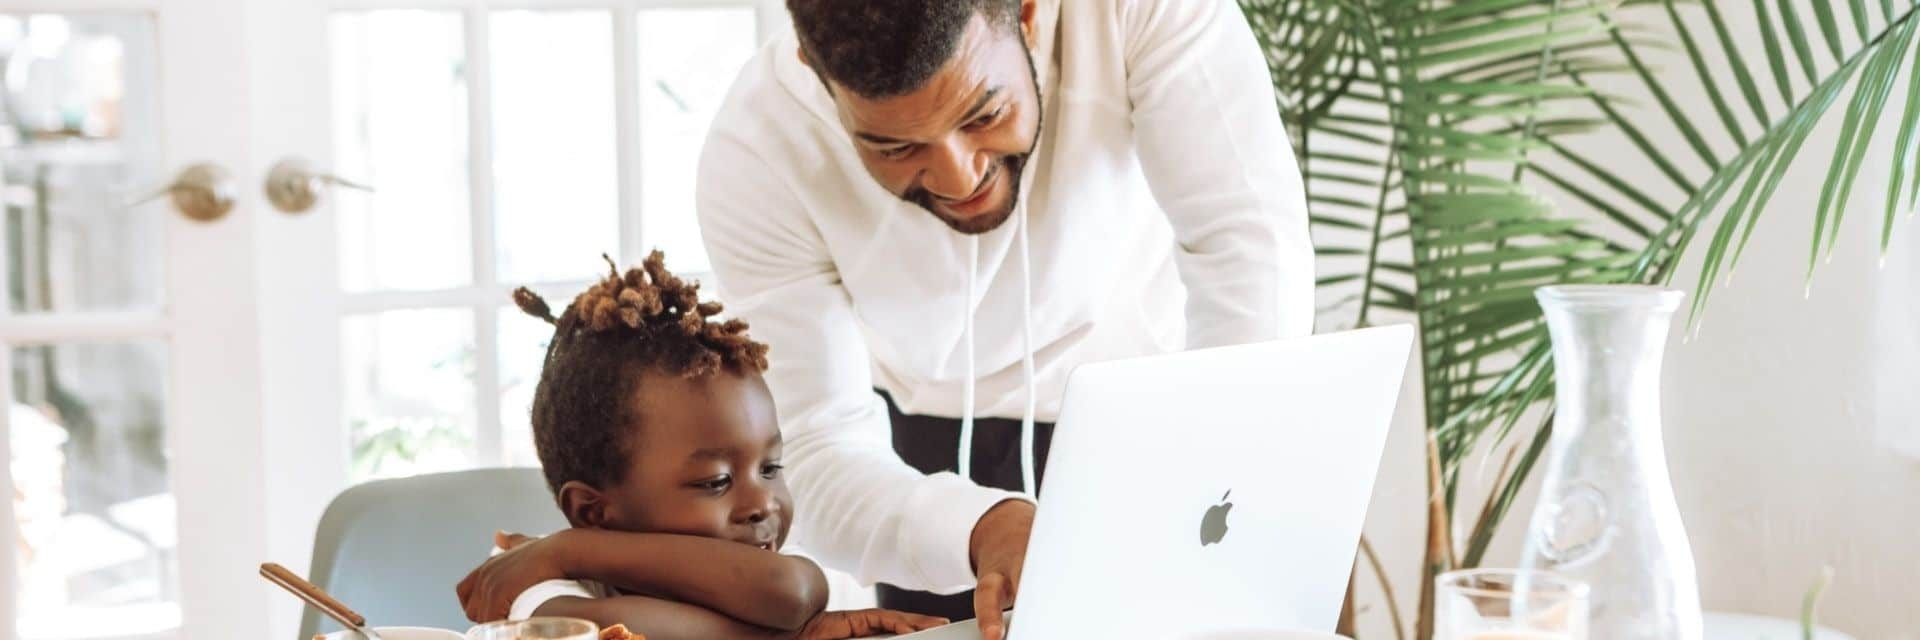 Working parents need to balance parenting and remote work, as shown in this photo of a father and his child